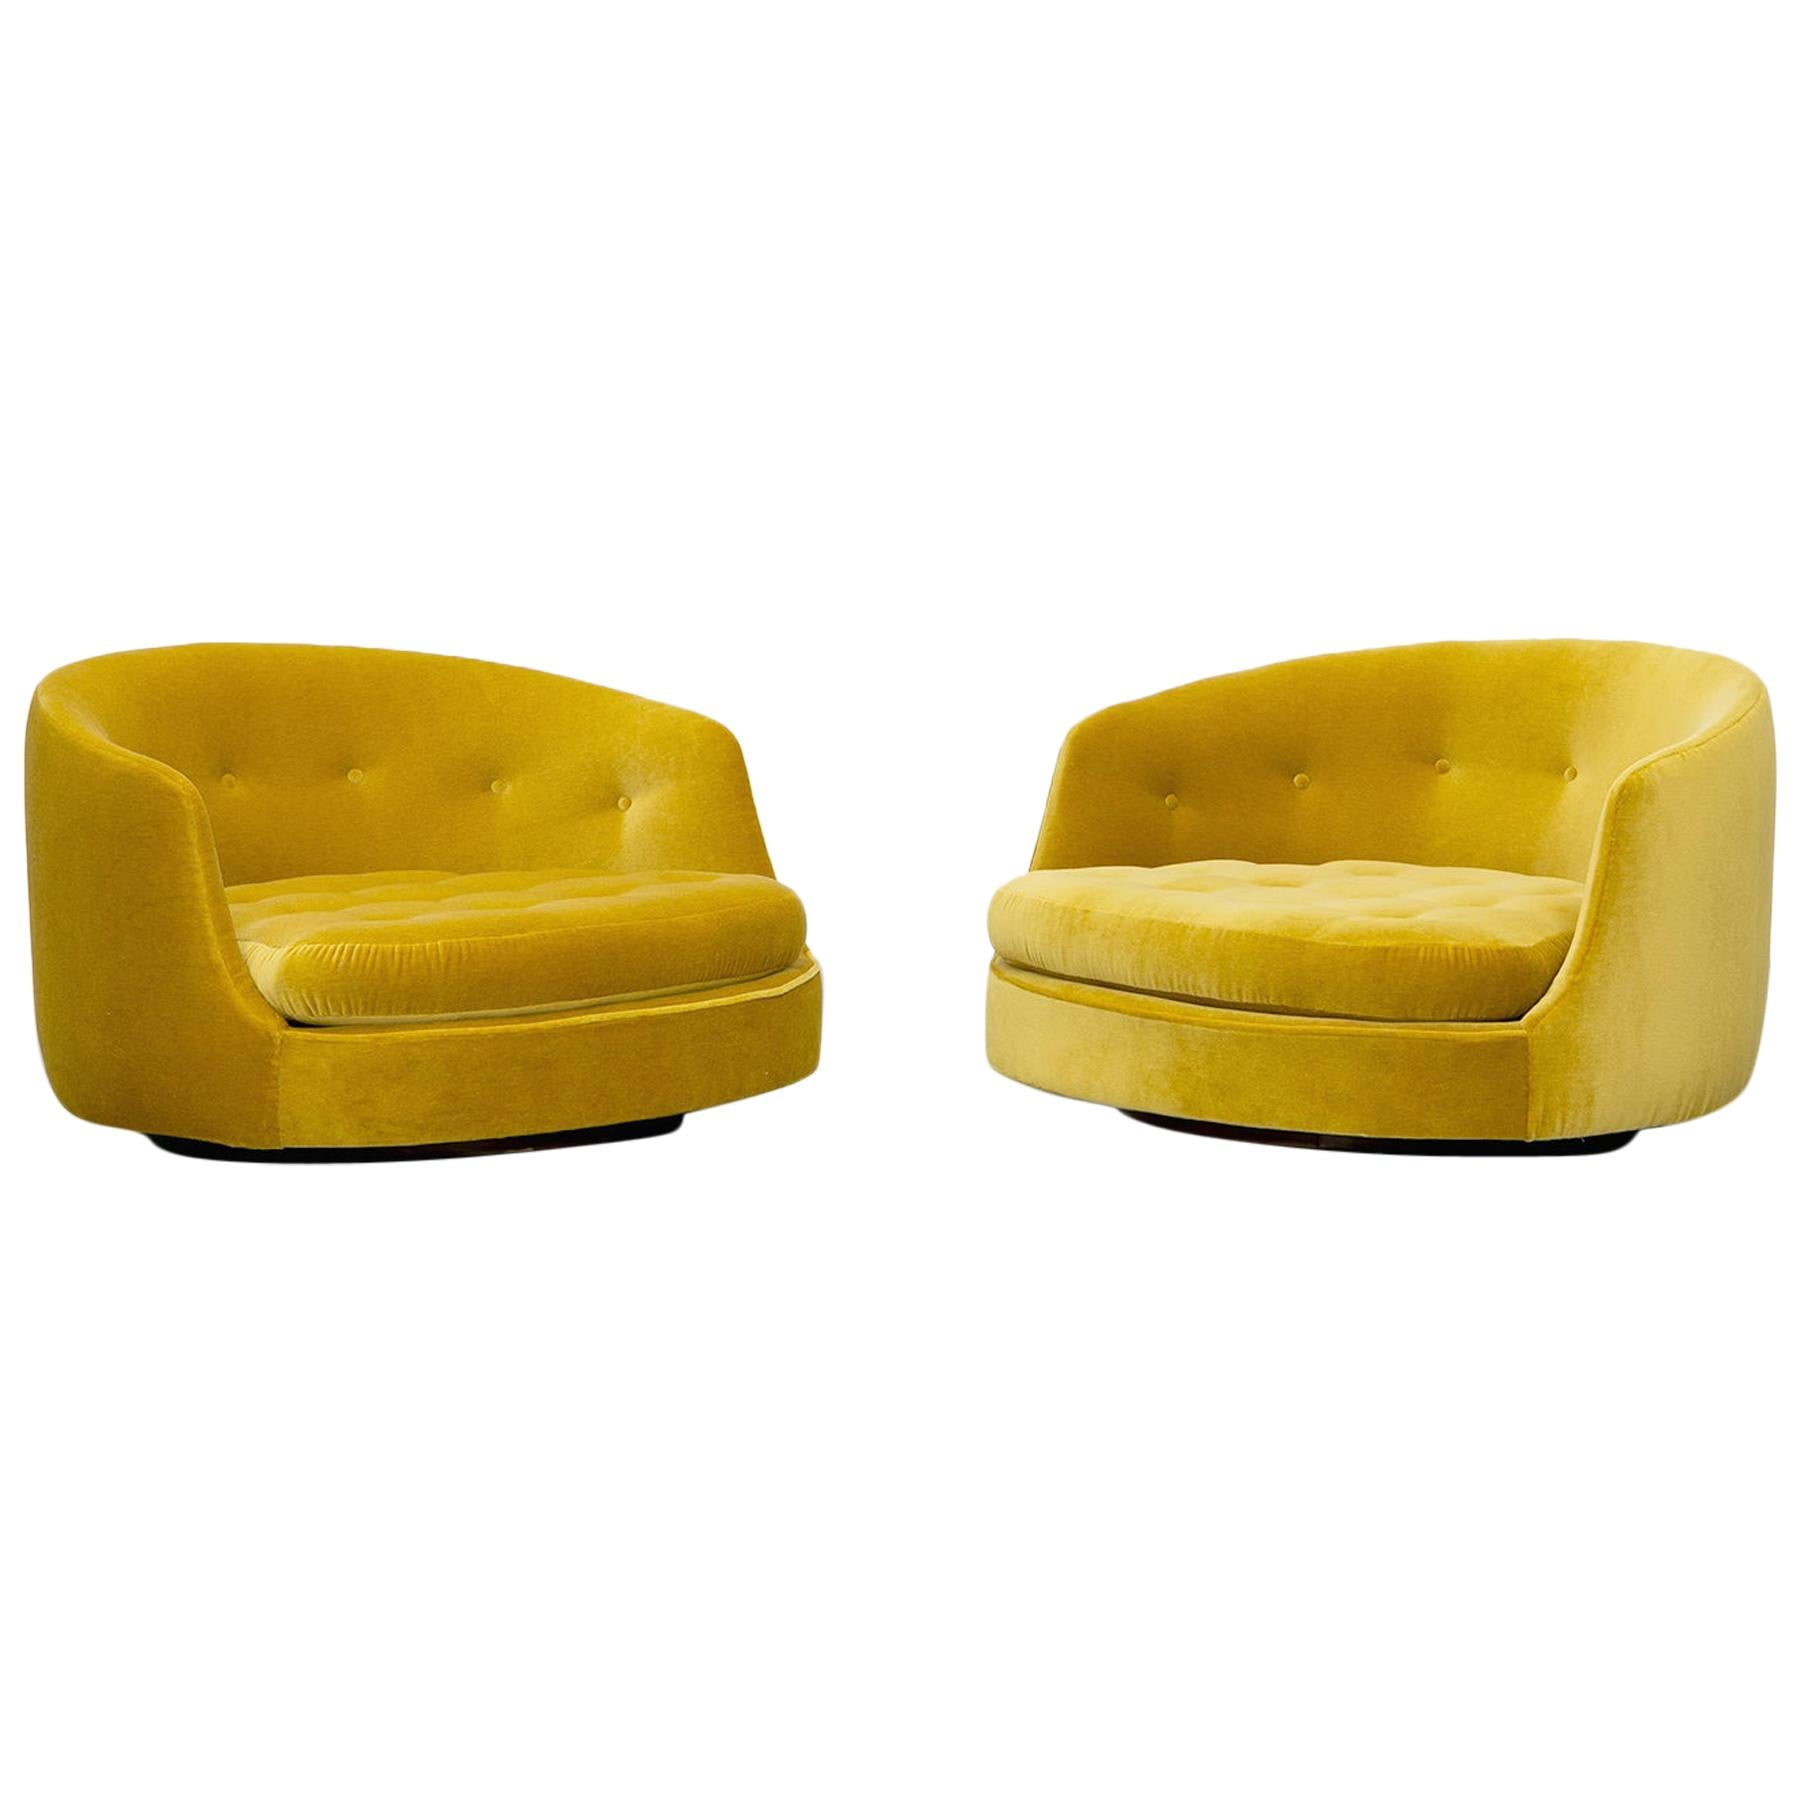 1970s Yellow New Upholstery Pair of Swivel Lounge Chair by Milo Baughman